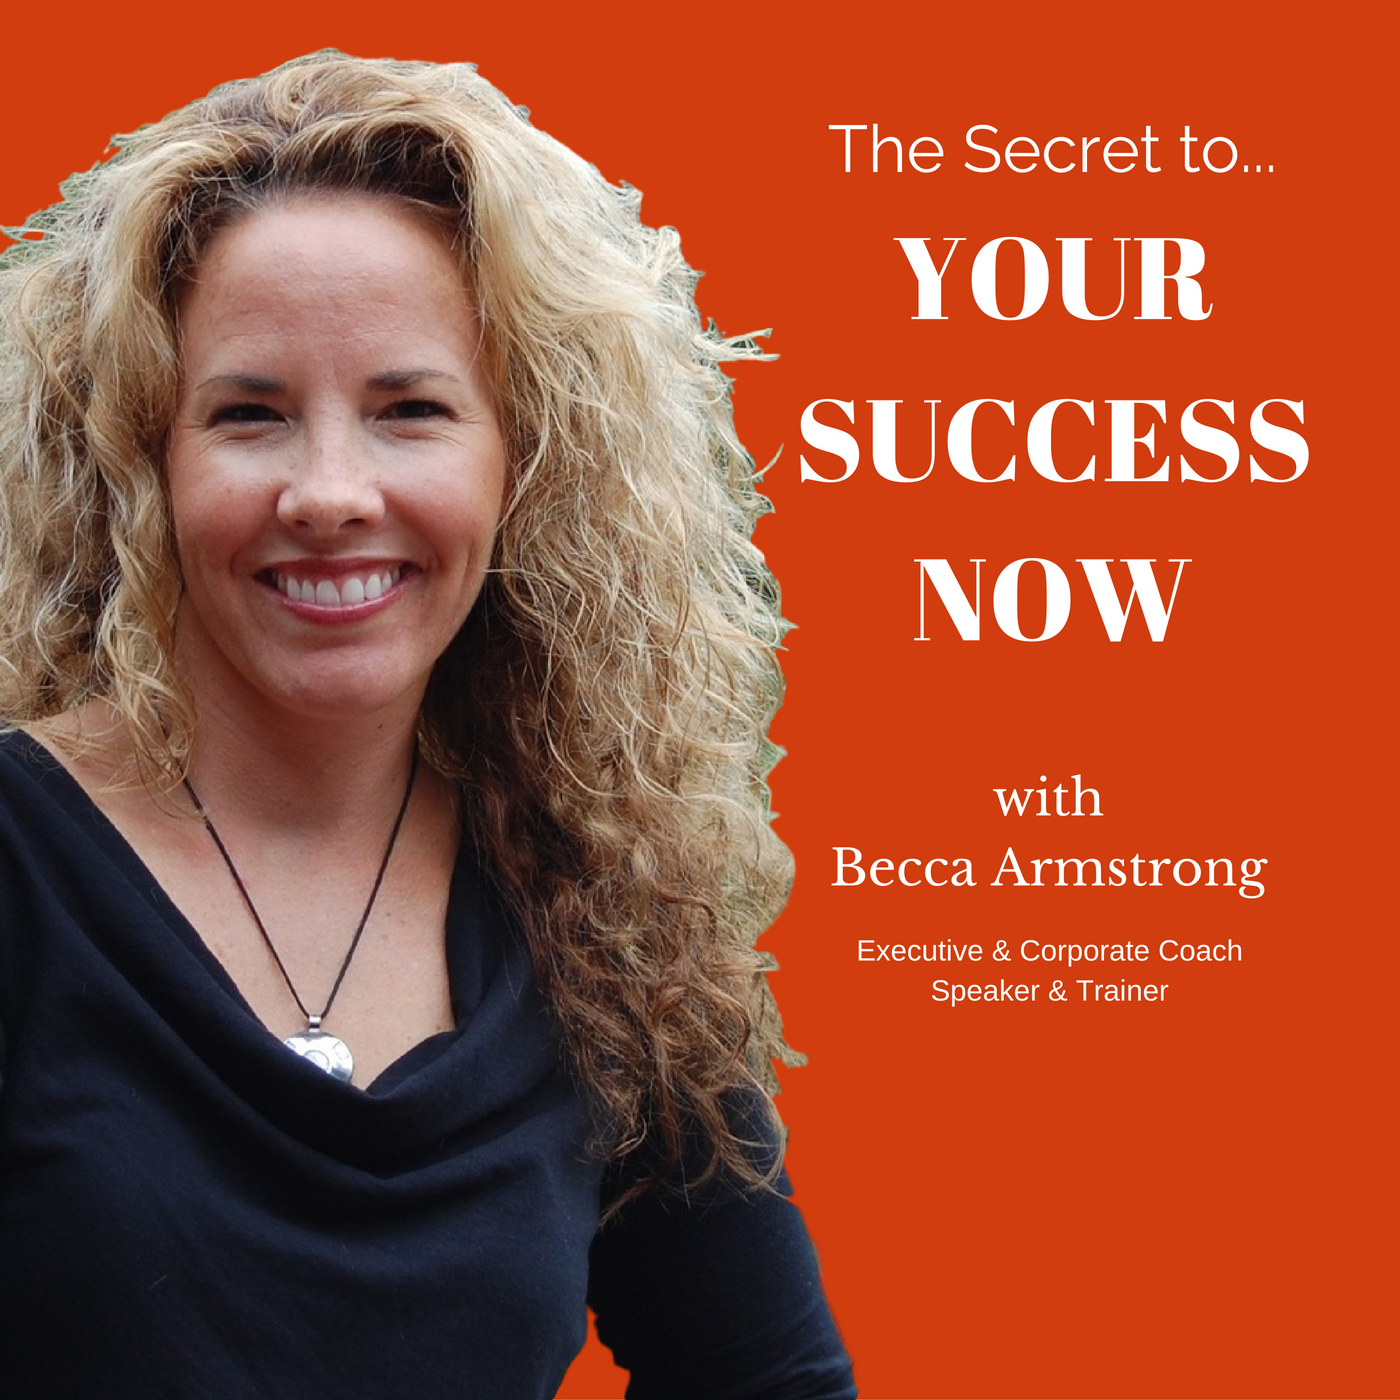 Your Success Now!